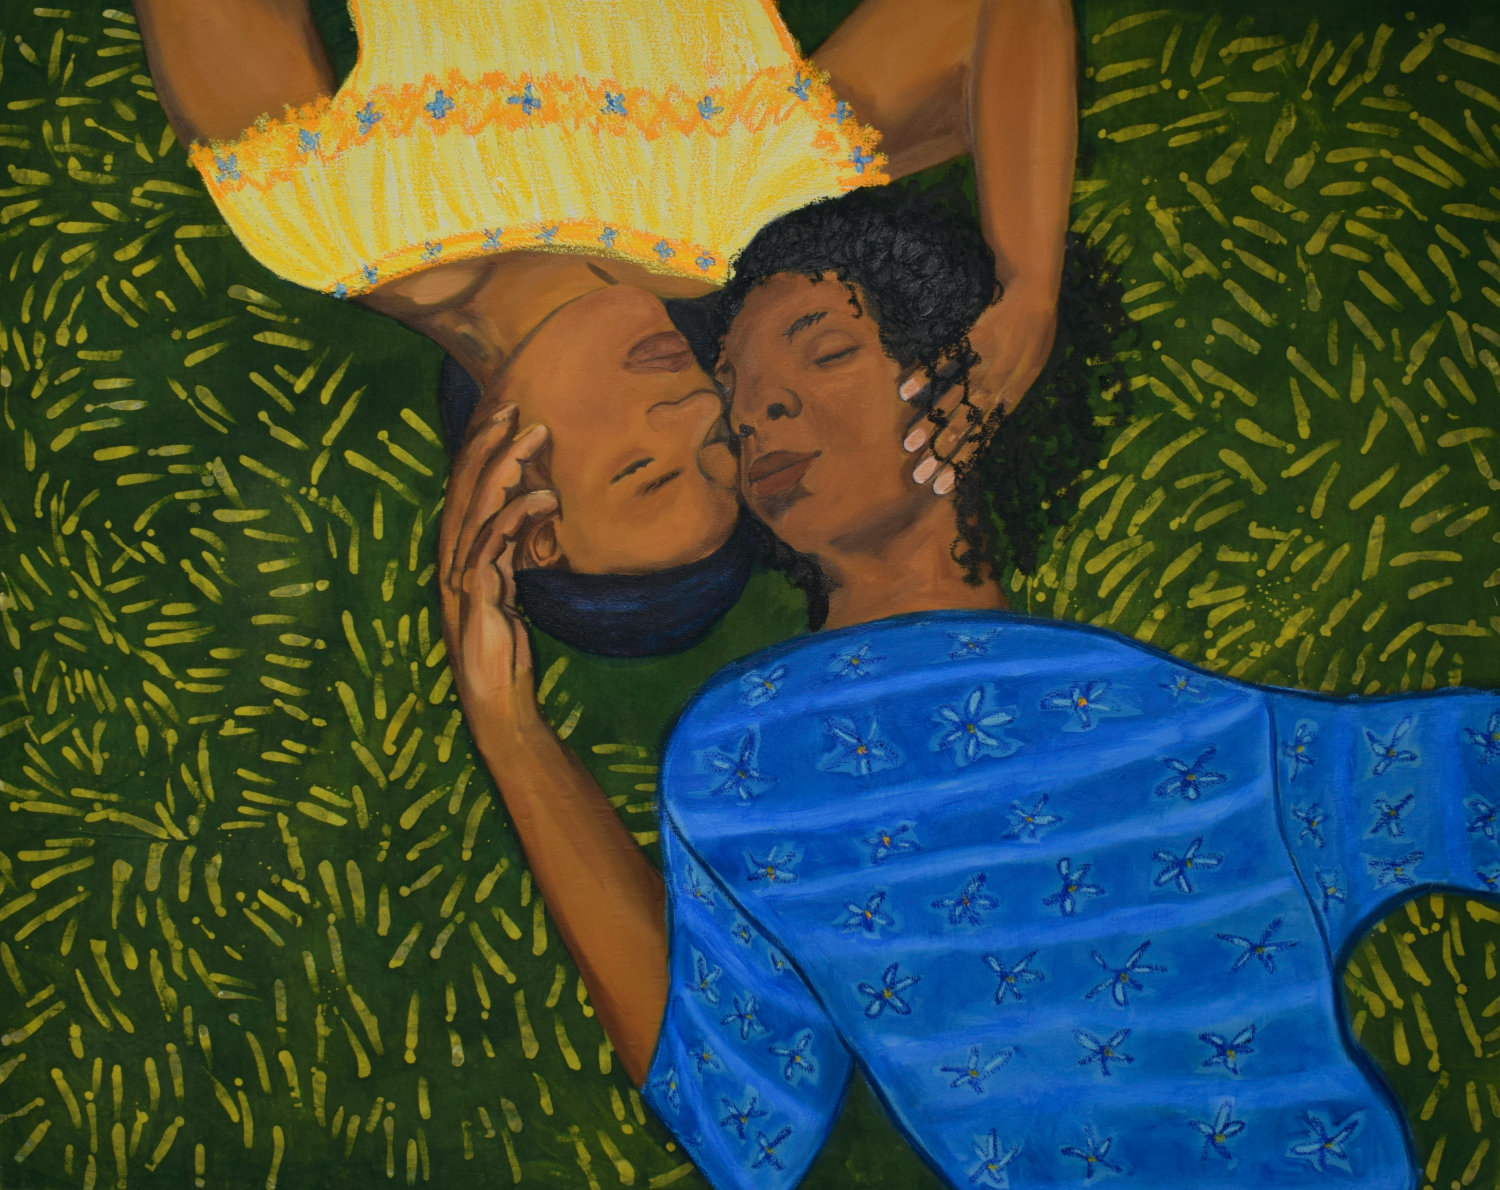 sola-olude-Laying In The Grass II 2020 - Ink - oil - oil pastel - oil bar and wax on canvas - 122 - 152 cm